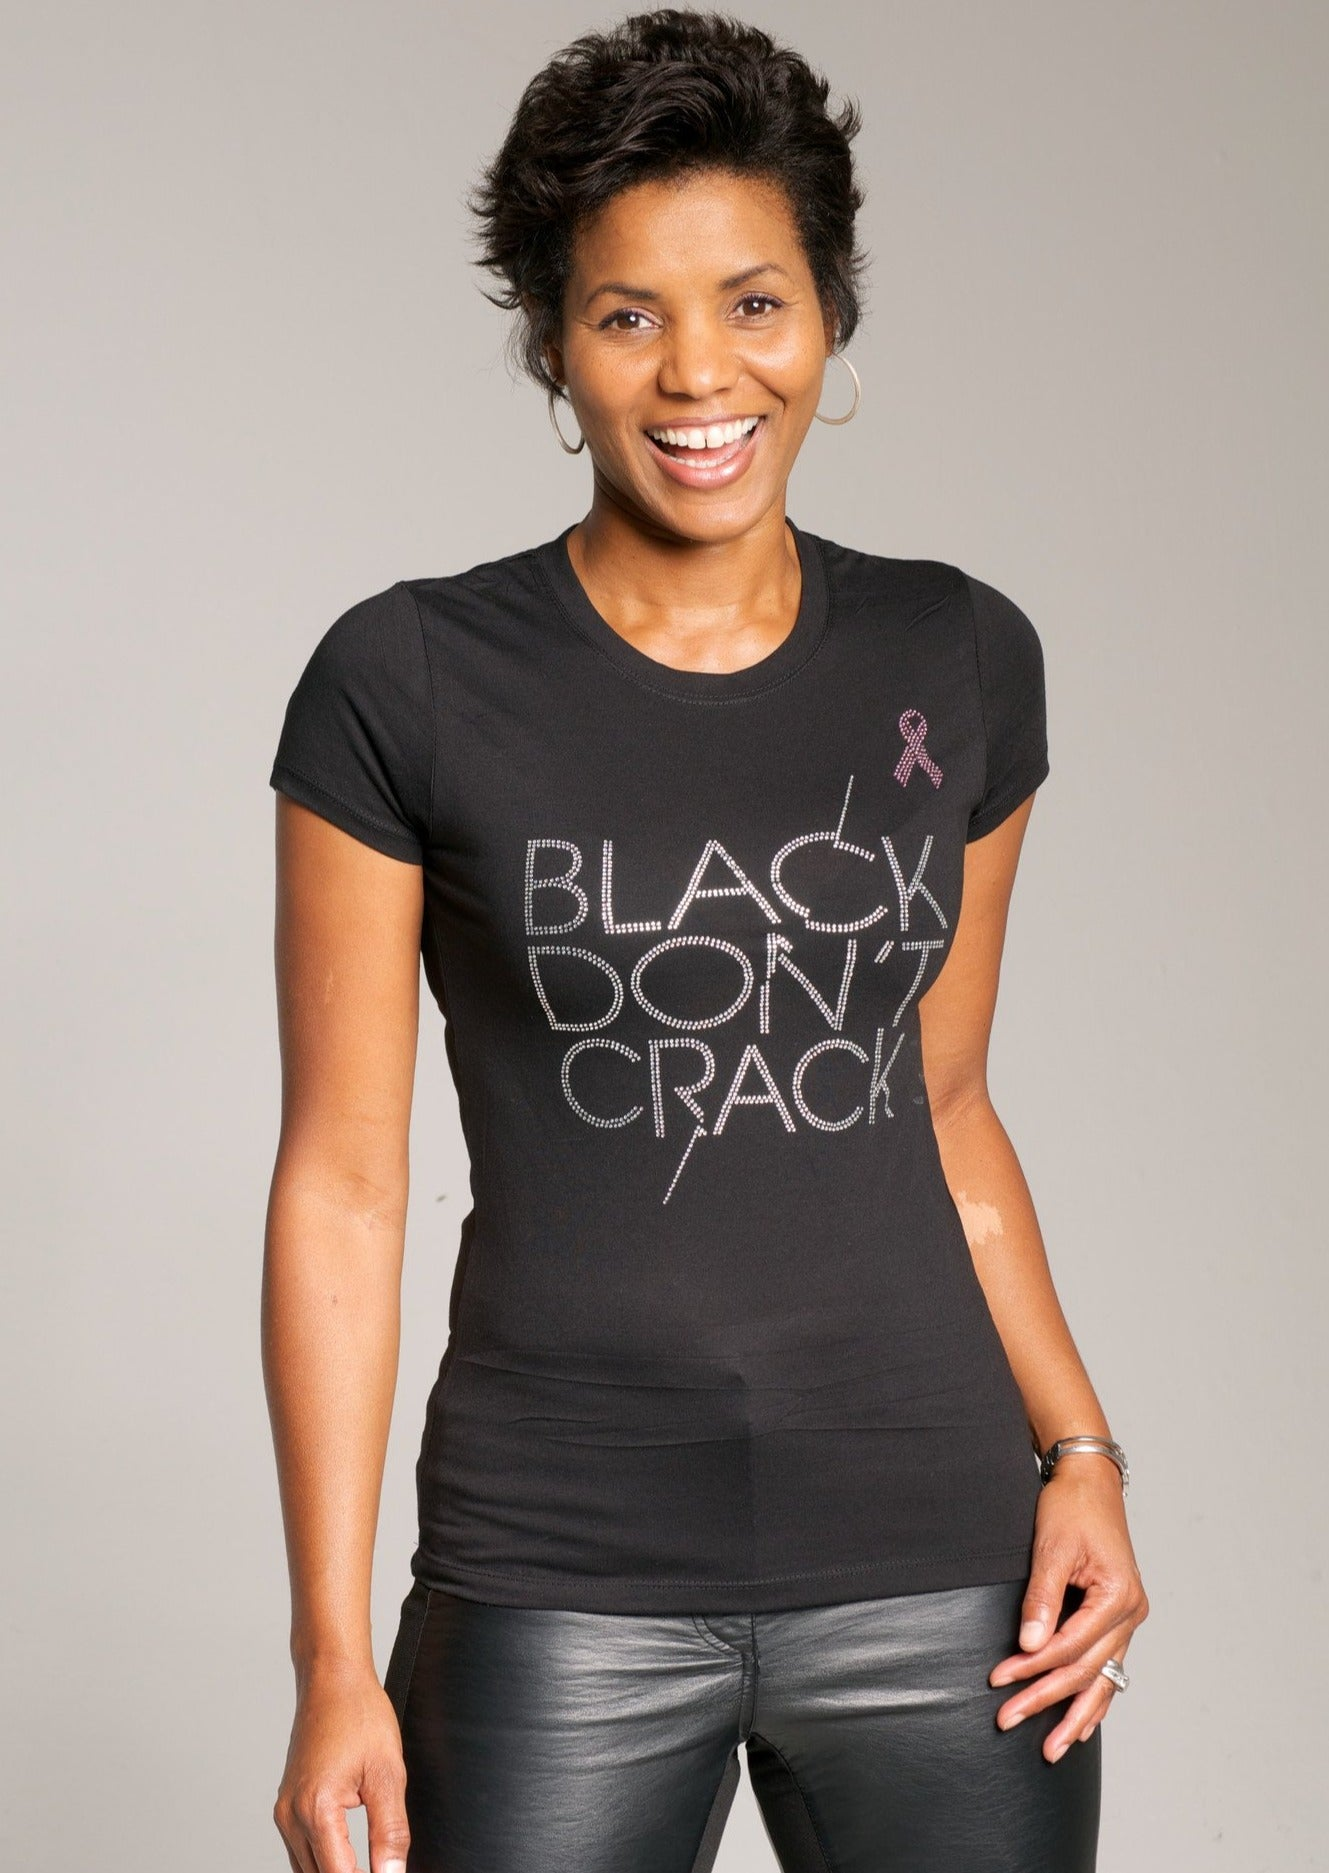 Black Don't Crack Ladies Bling Breast Cancer Awareness Short Sleeve Crew-Neck T-shirt